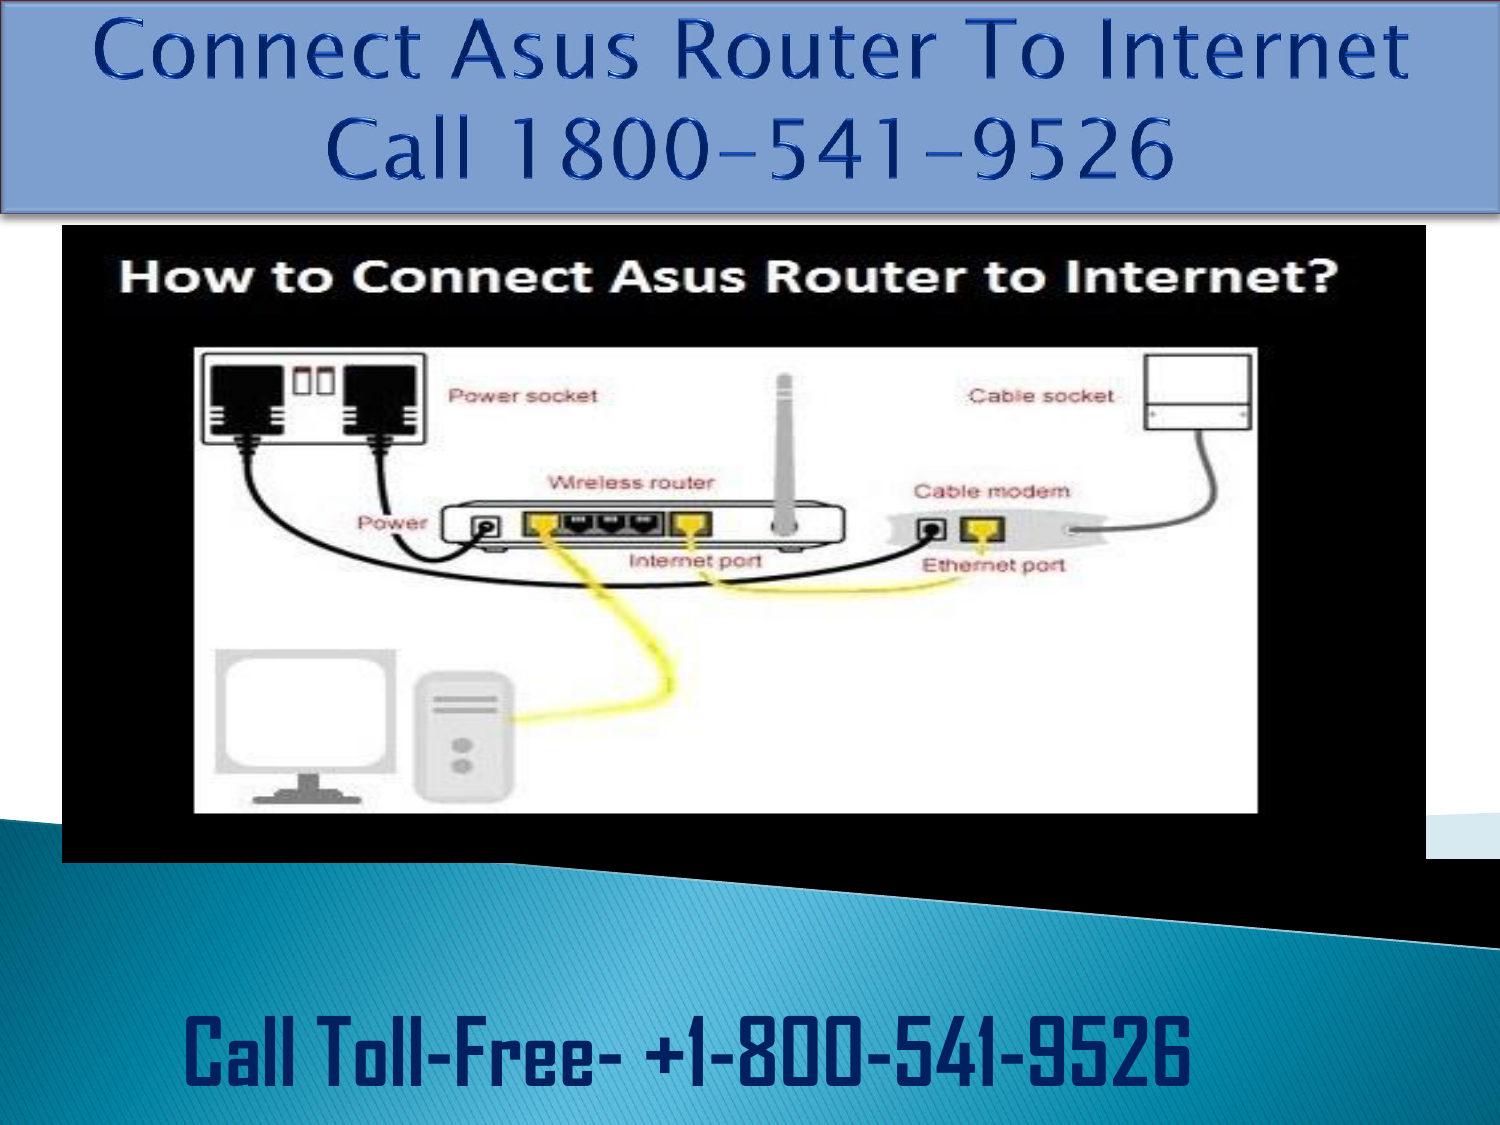 How To Connect Asus Router To Internet? Call 1-800-541-9526